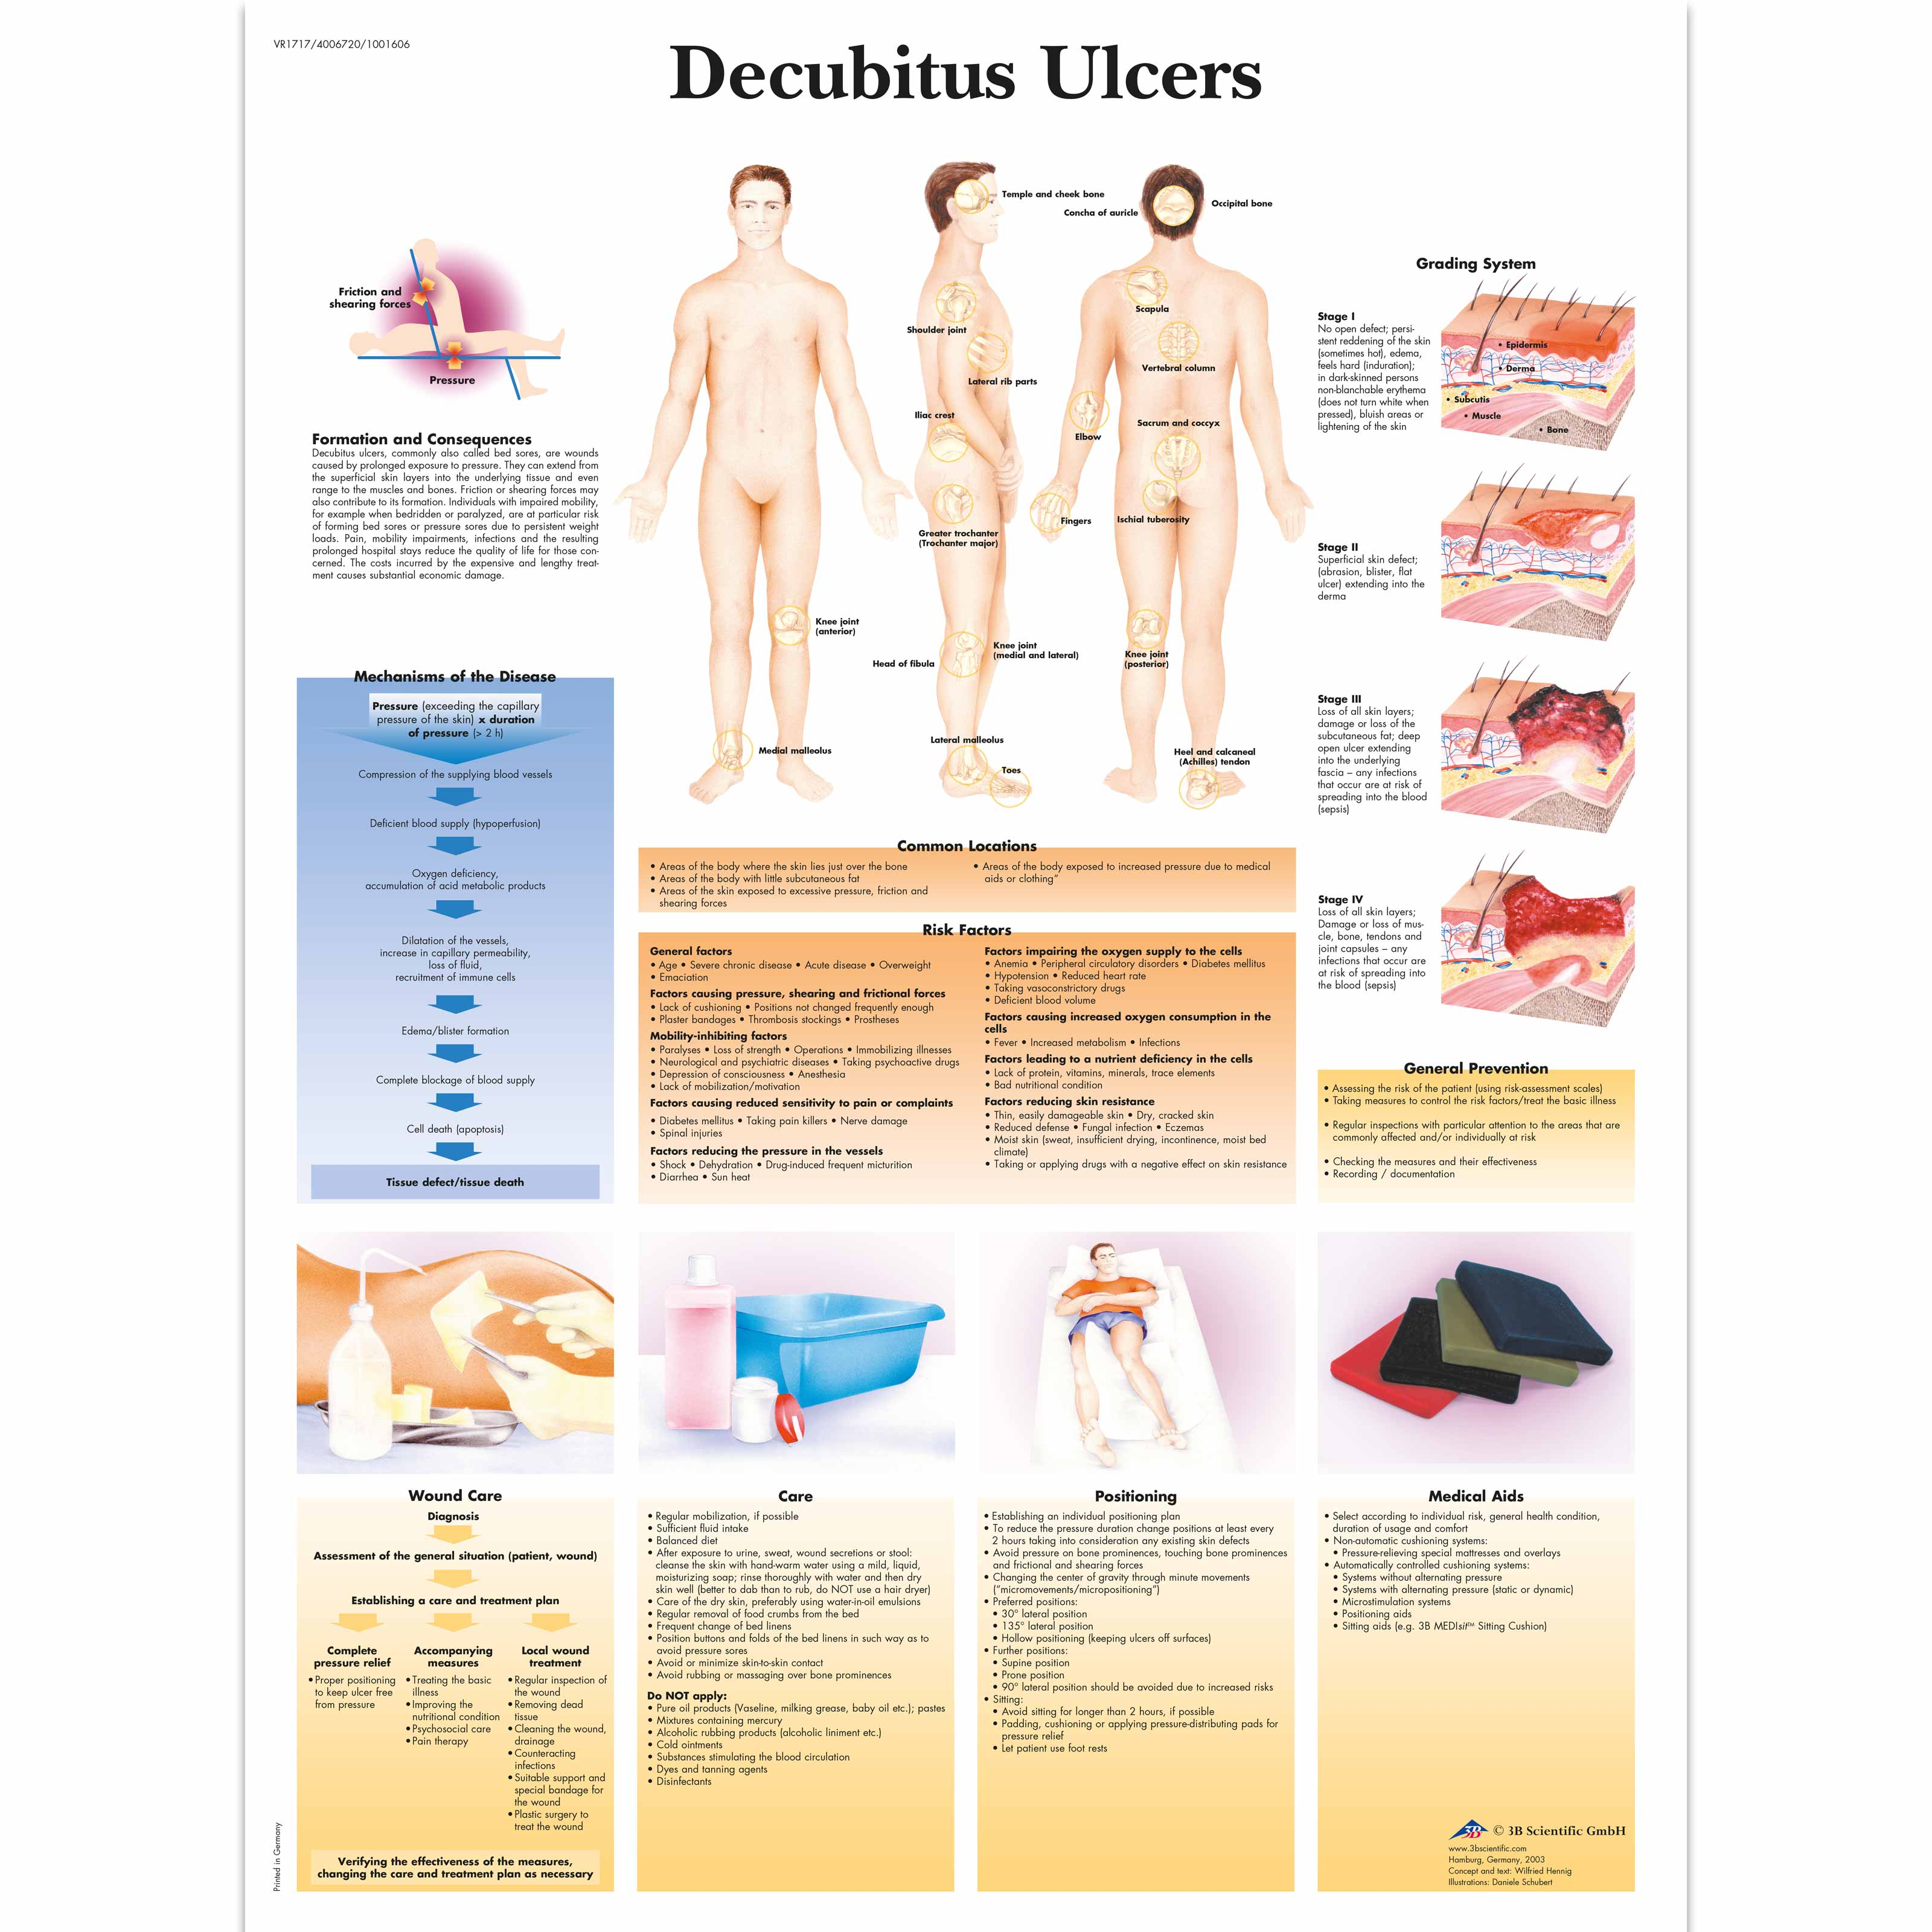 Decubitus Ulcer or Bed Sores: Causes & Treatments